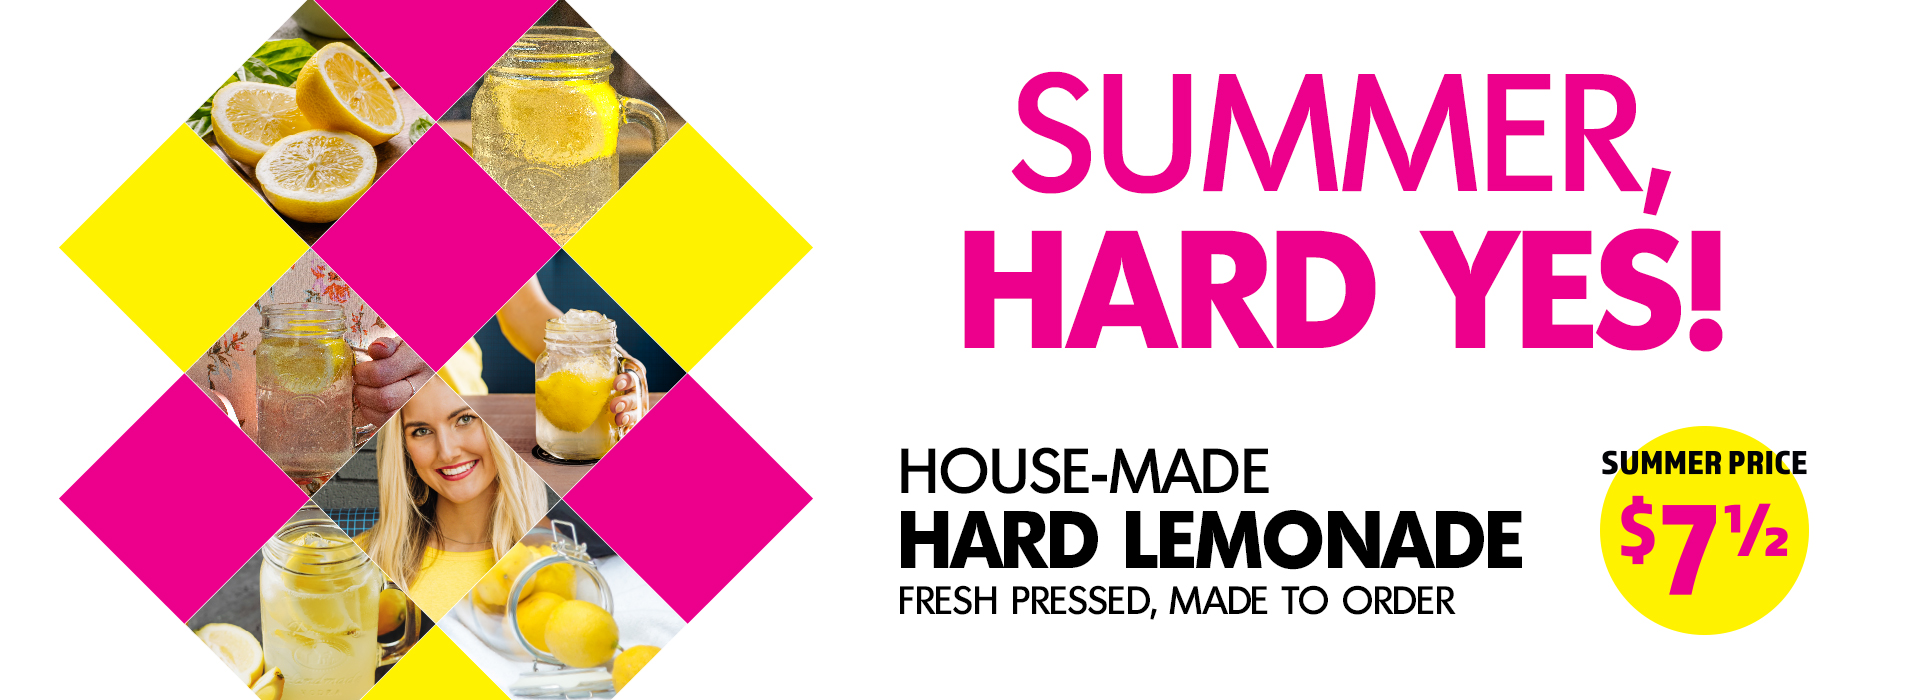 House Made Hard Lemonade. Fresh Pressed, Made to Order